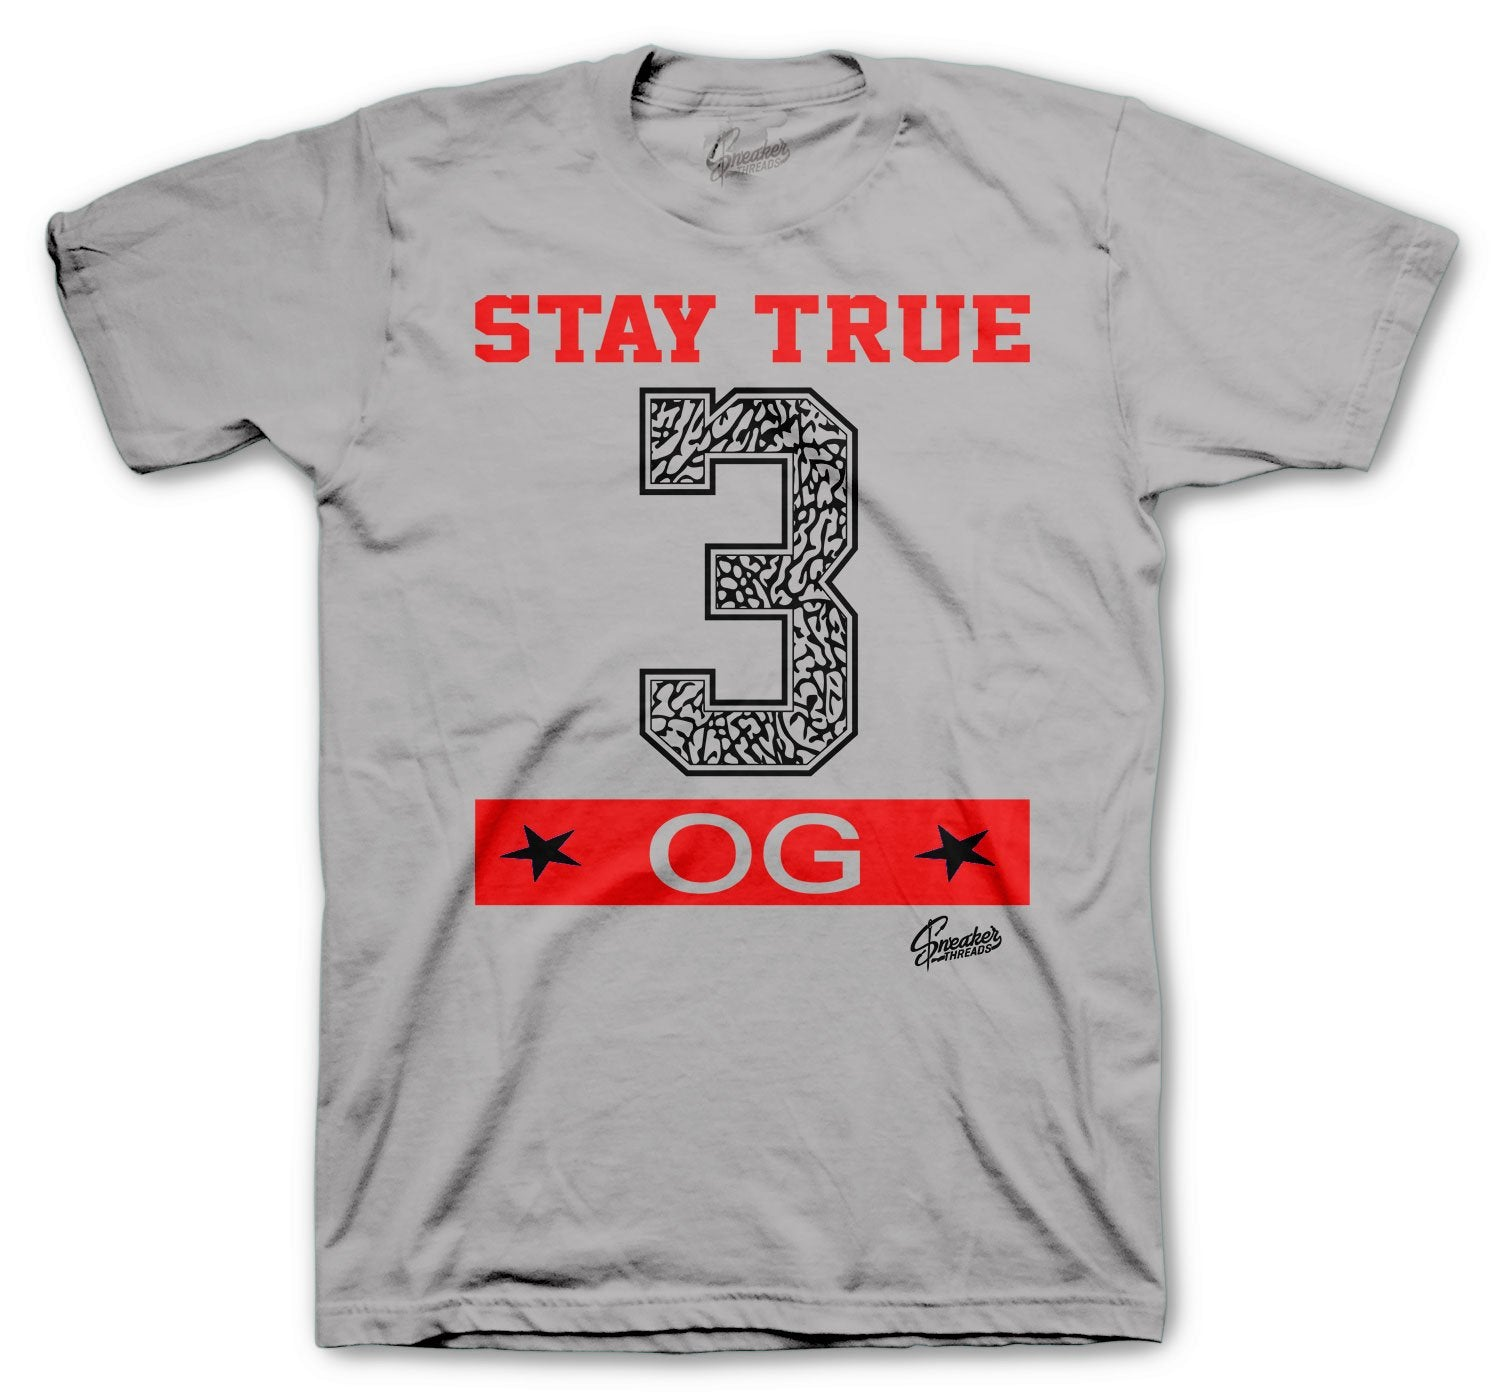 t shirt collection designed to match the sneaker collection Jordan 3 red cement sneakers